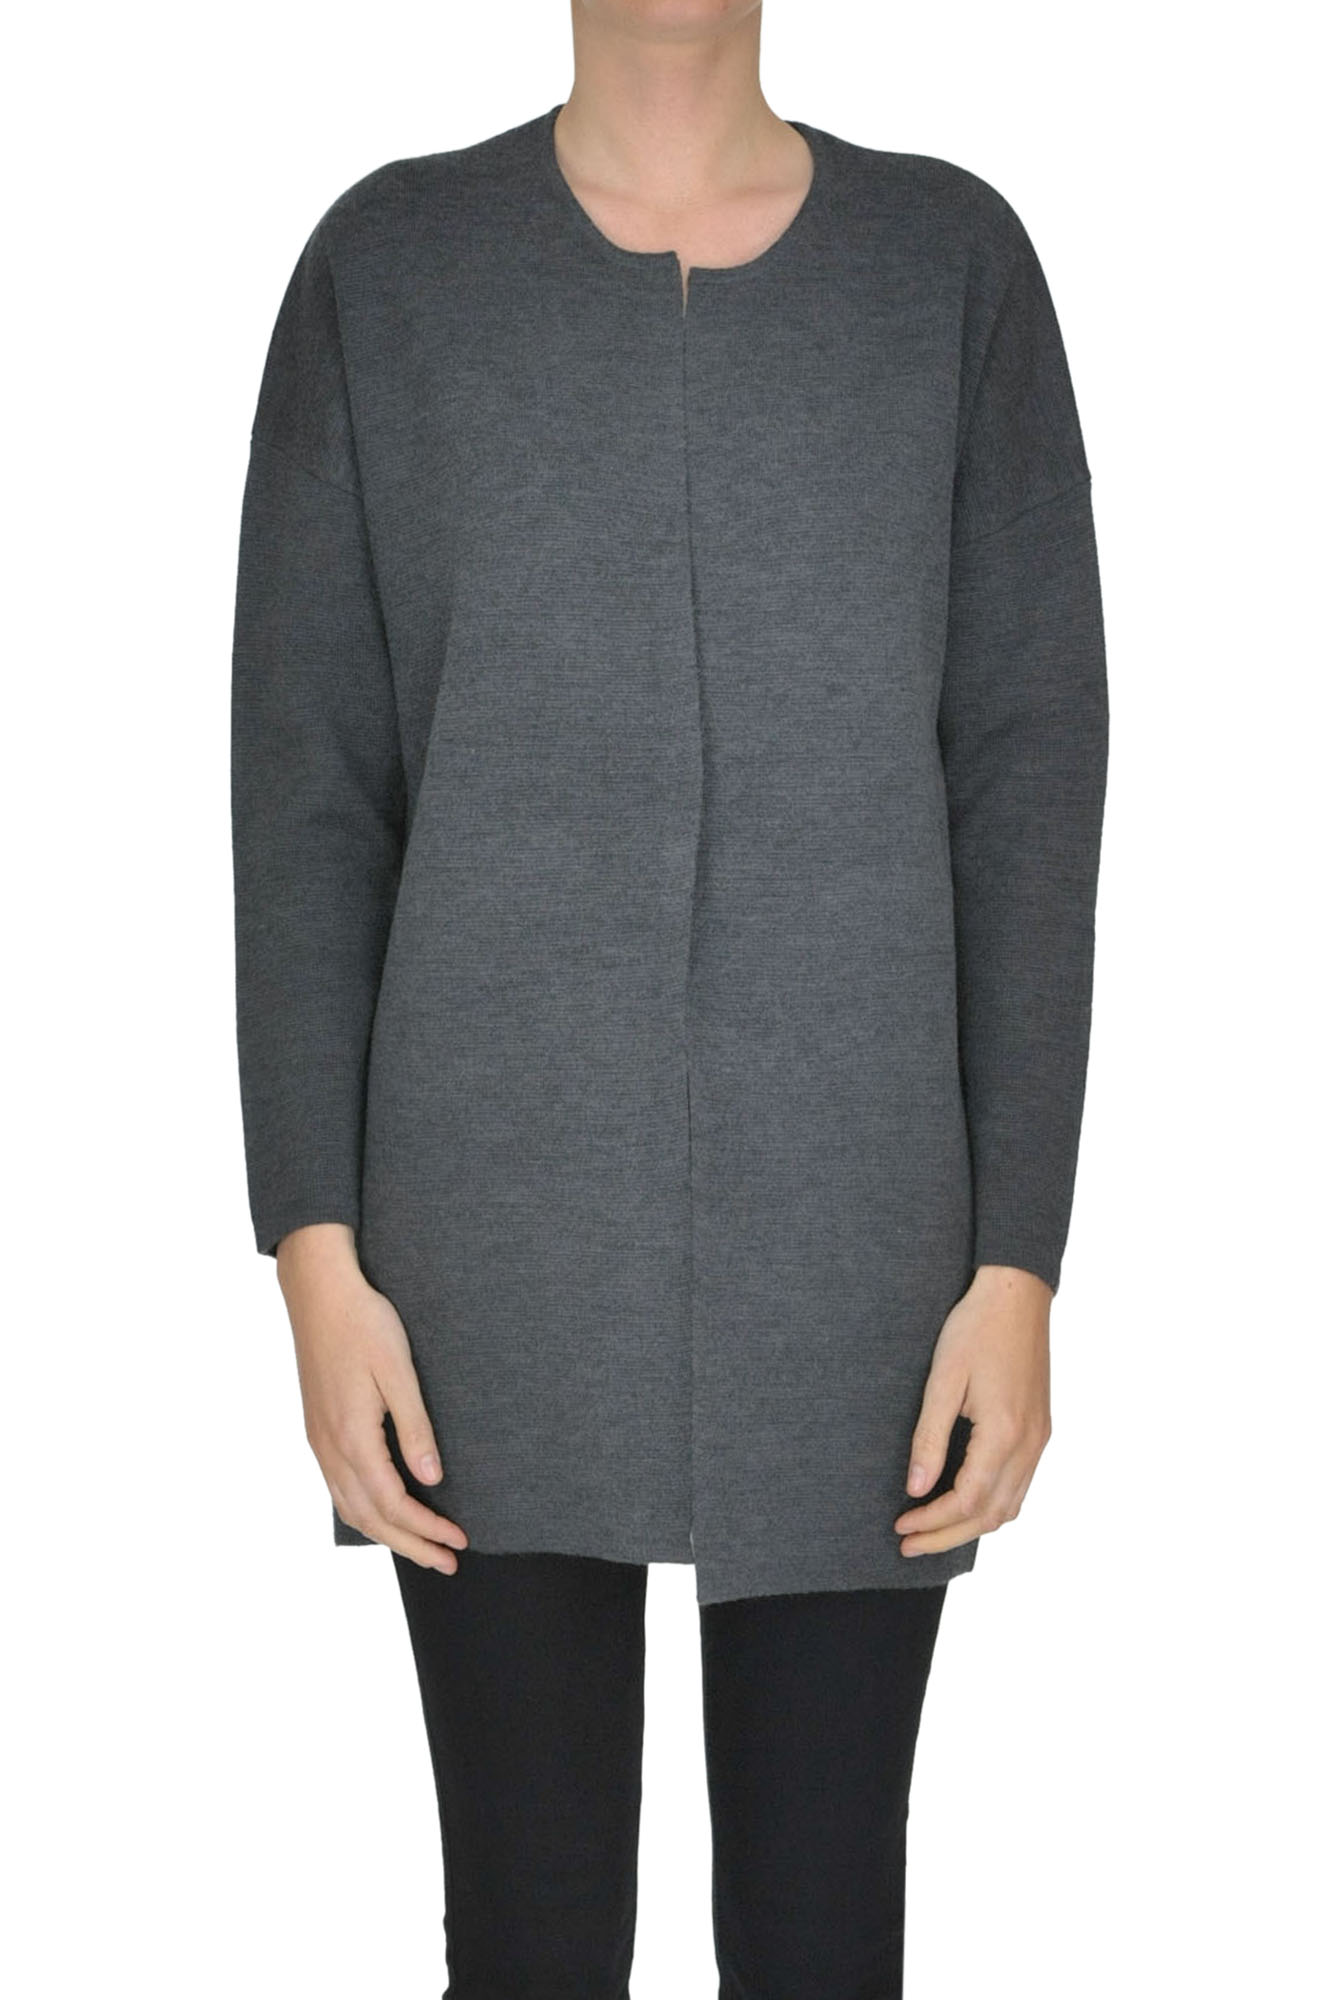 SEVENTY Structured Cardigan in Charcoal